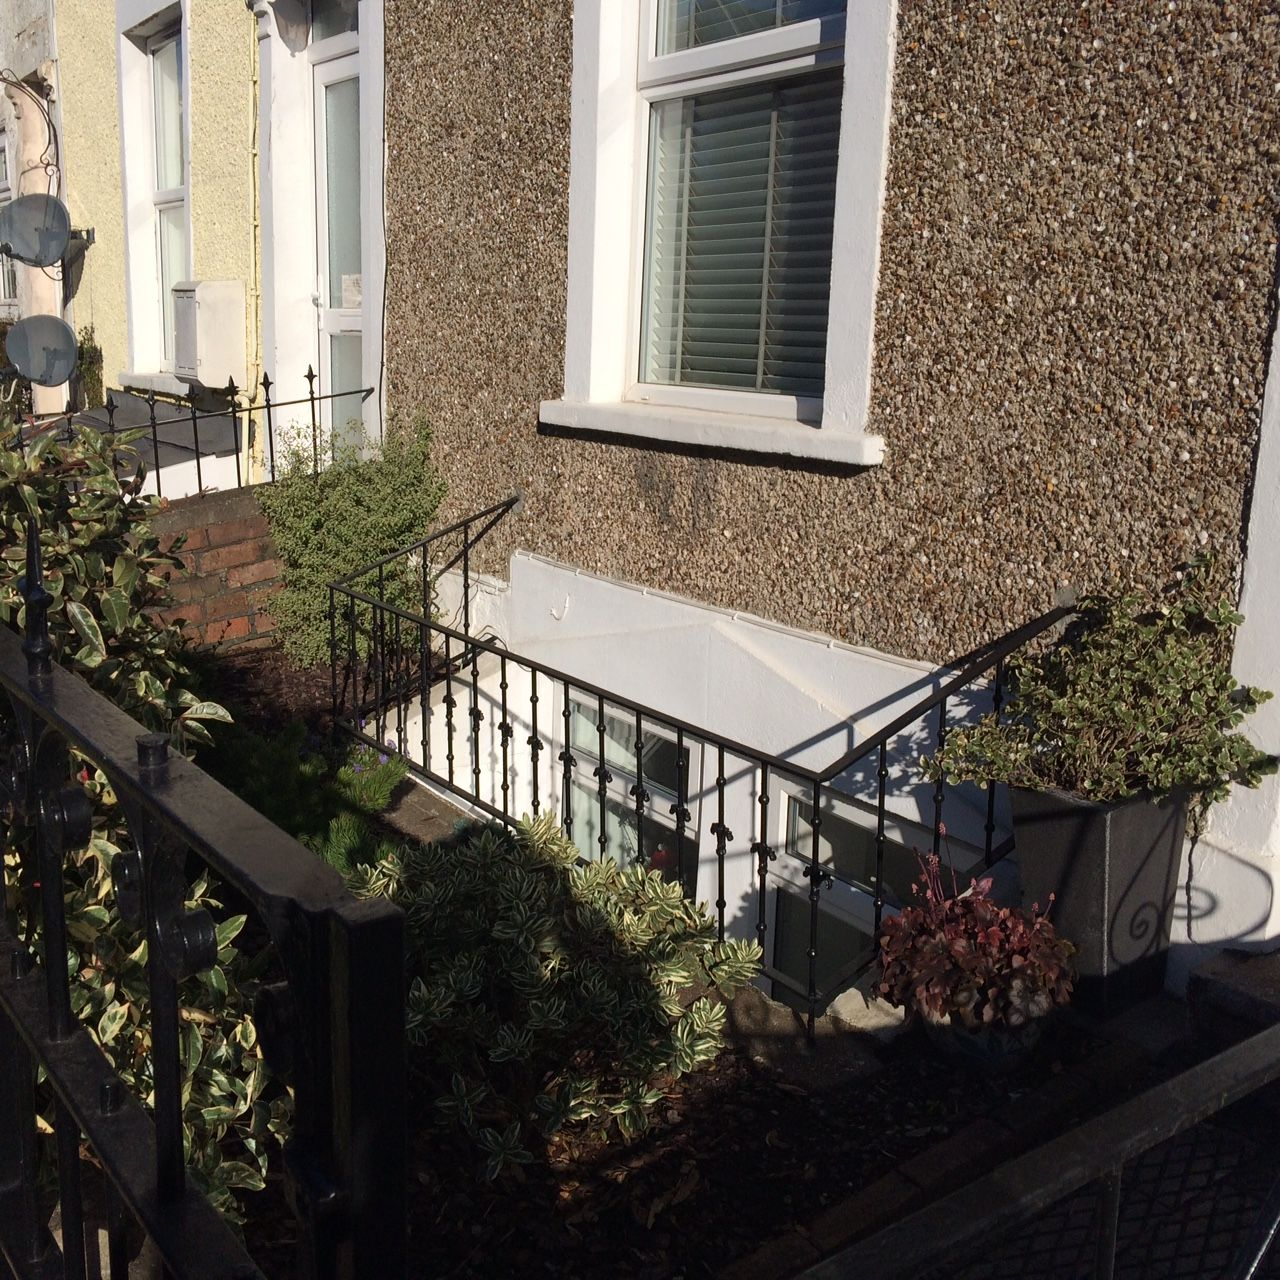 Victorian Flat Fronted House With Basement Conversion Showing Exterior  Window With Railings